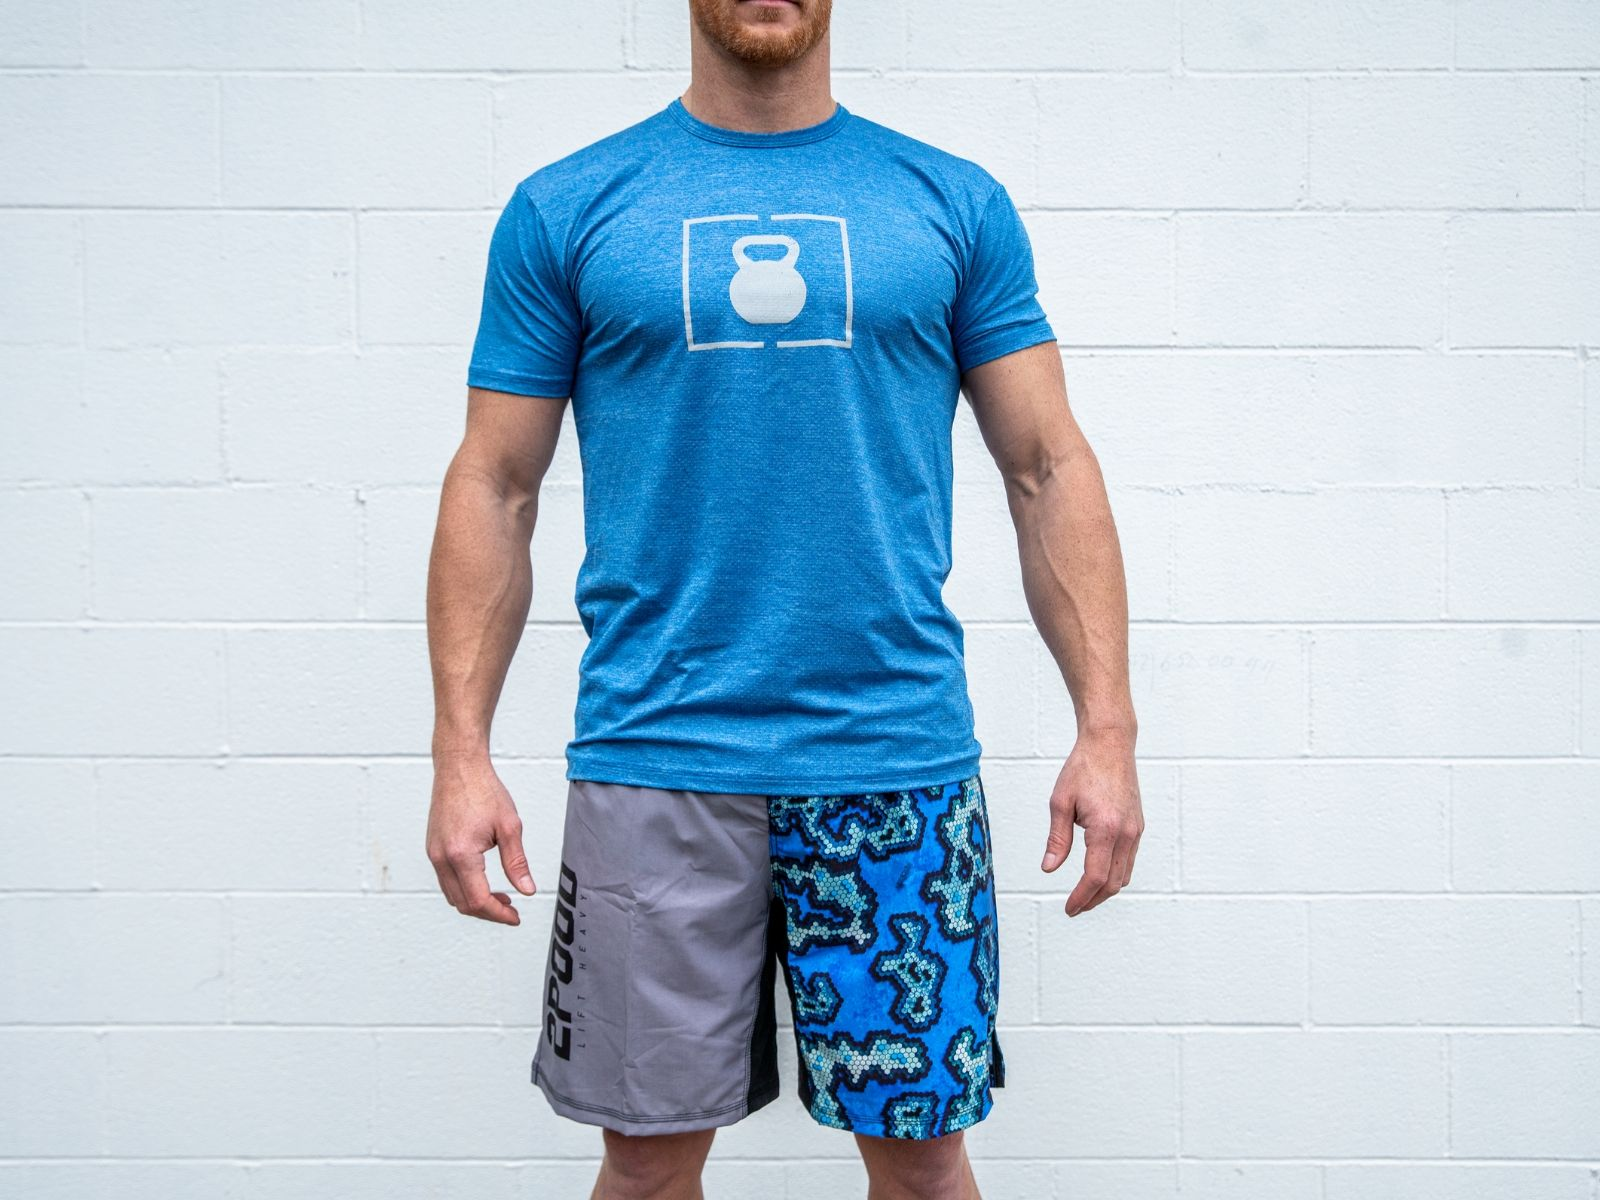 Cool Blue Lift Performance Fitted T-shirt - 2POOD